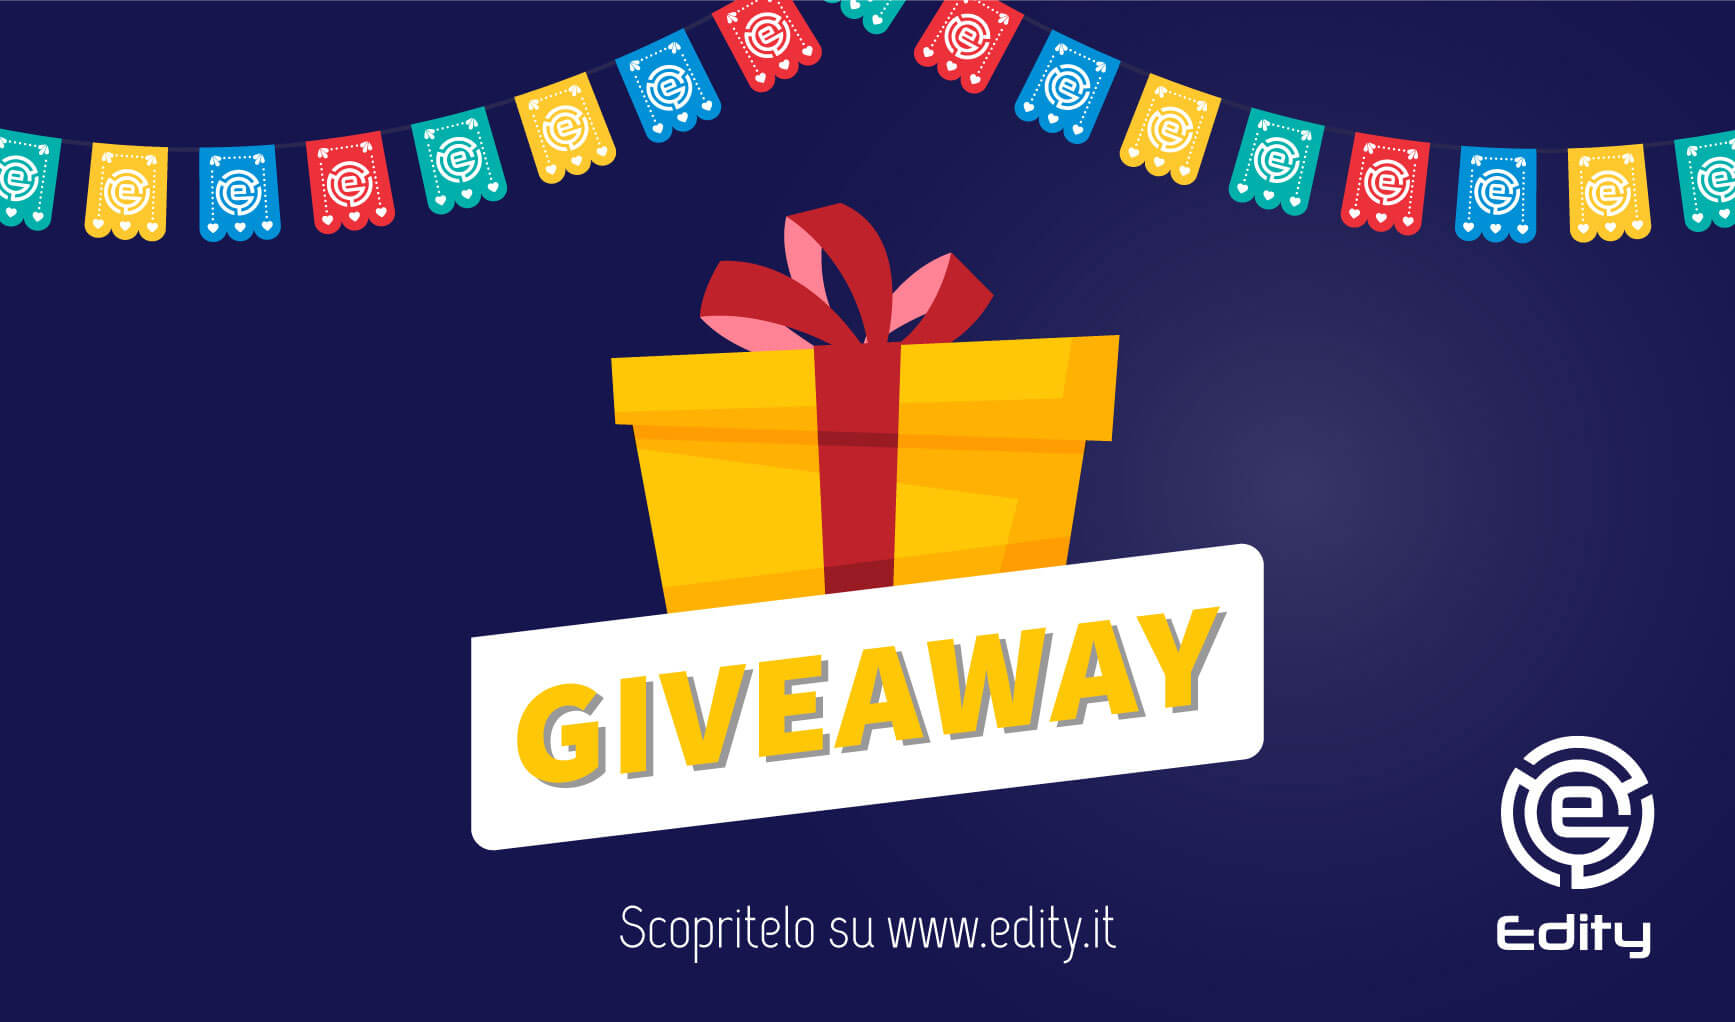 http://www.edity.it/blog/giveaway-edity.html